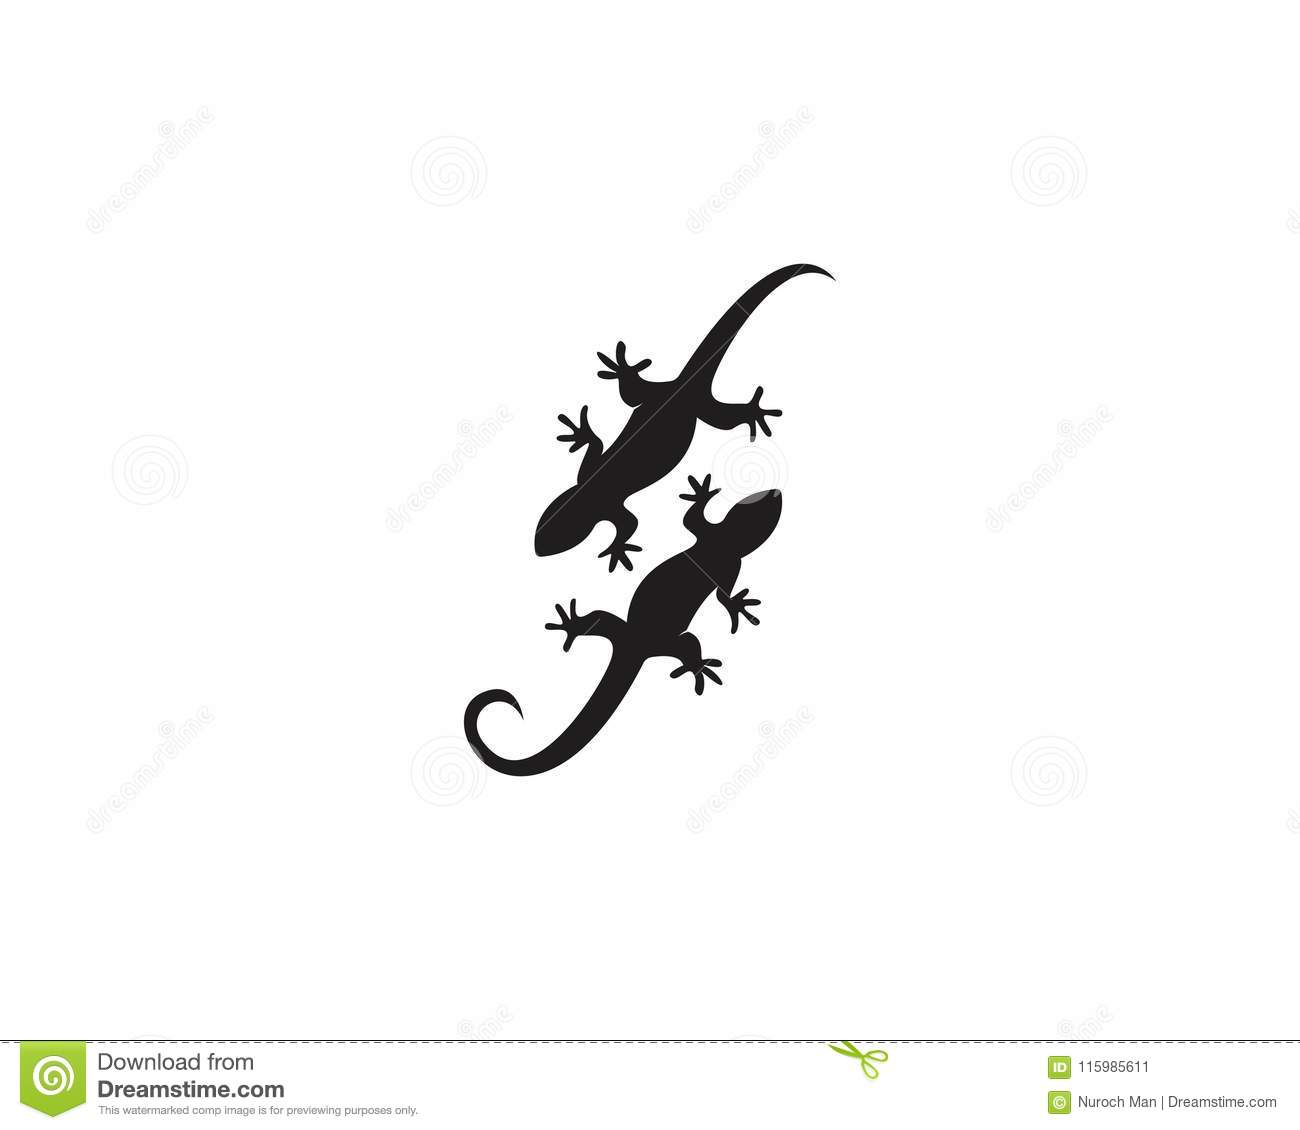 Lizard Template Kleo Bergdorfbib Co